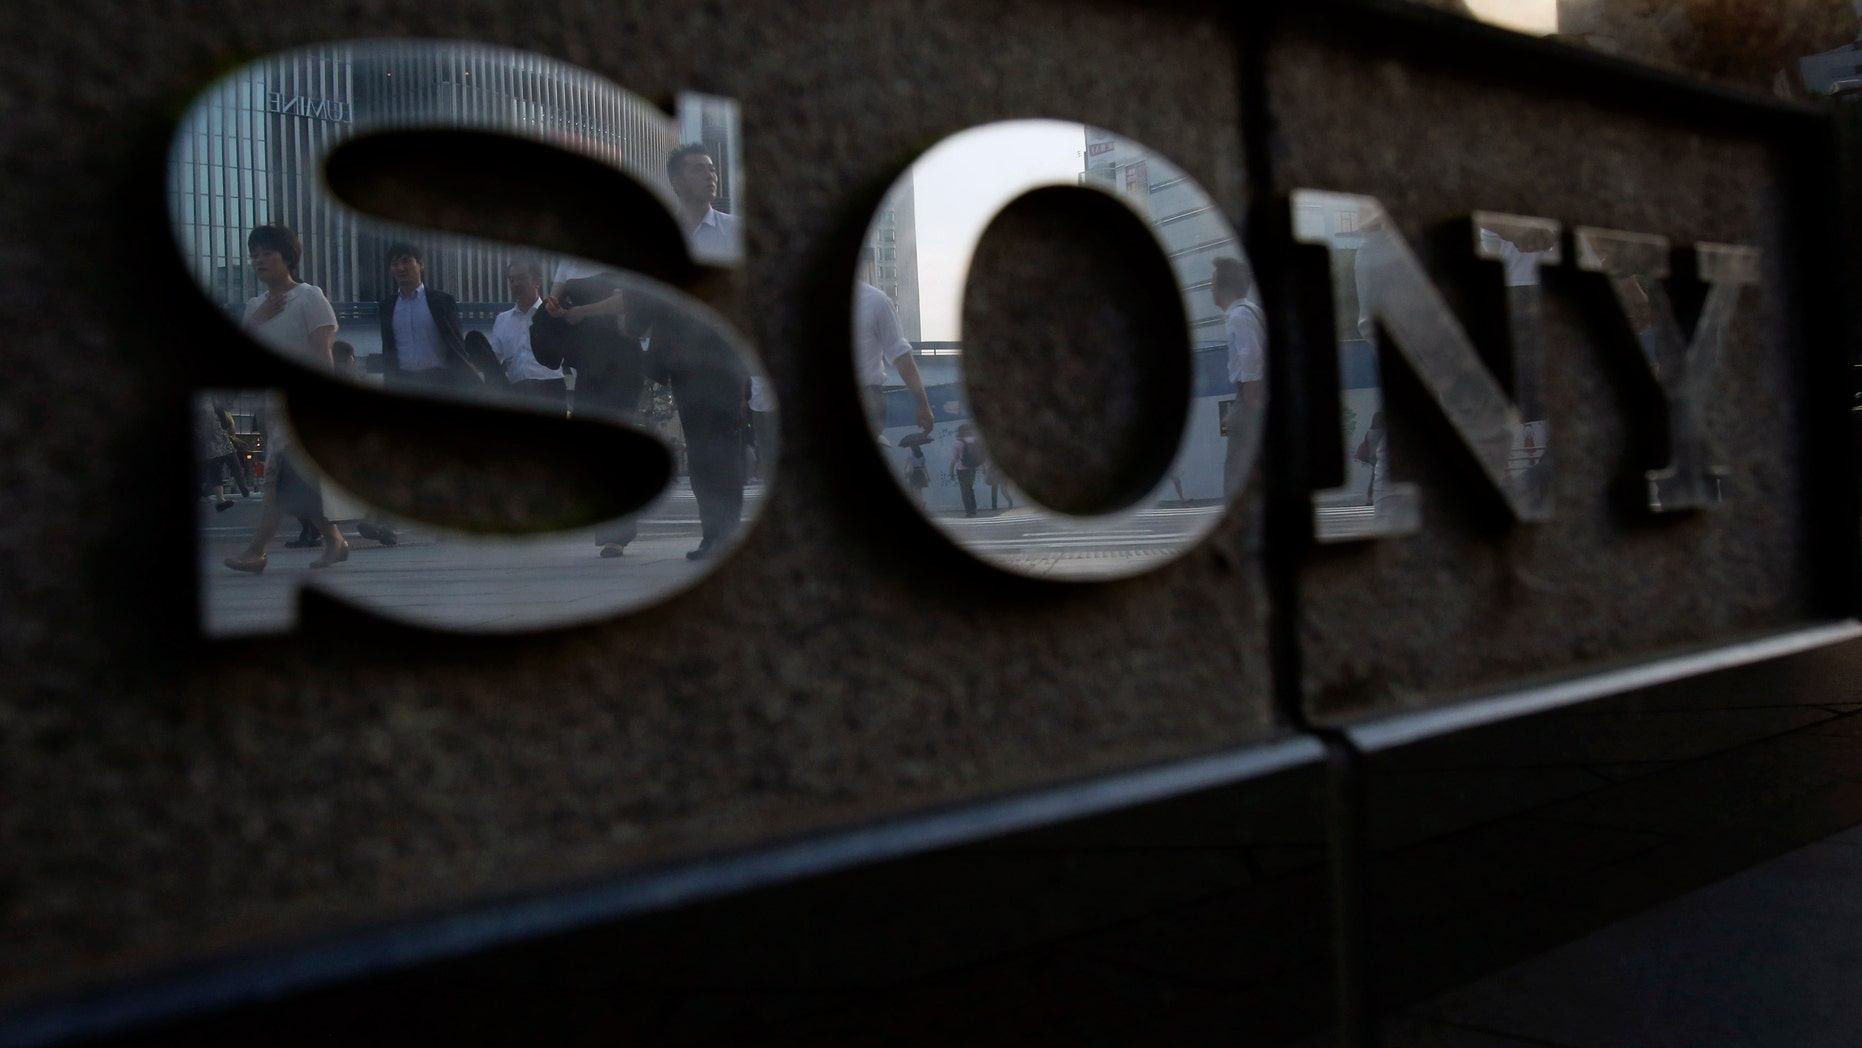 Pedestrians are reflected in a logo of Sony Corp outside its showroom in Tokyo July 16, 2014. Japan's Sony Corp is hammering out plans to rise from the ashes of nearly $10 billion lost in six years by building a future around its last consumer electronics blockbuster - the PlayStation. Sony plans to reposition the video console warhorse as a hub for a network of streamed services, according to three senior officials, offering social media, movies and music as well as games. The executives spoke to Reuters on condition they not be named because the matters are still in early stages of discussion.  Picture taken July 16, 2014. REUTERS/Yuya Shino (JAPAN - Tags: BUSINESS LOGO) - RTR40G1E